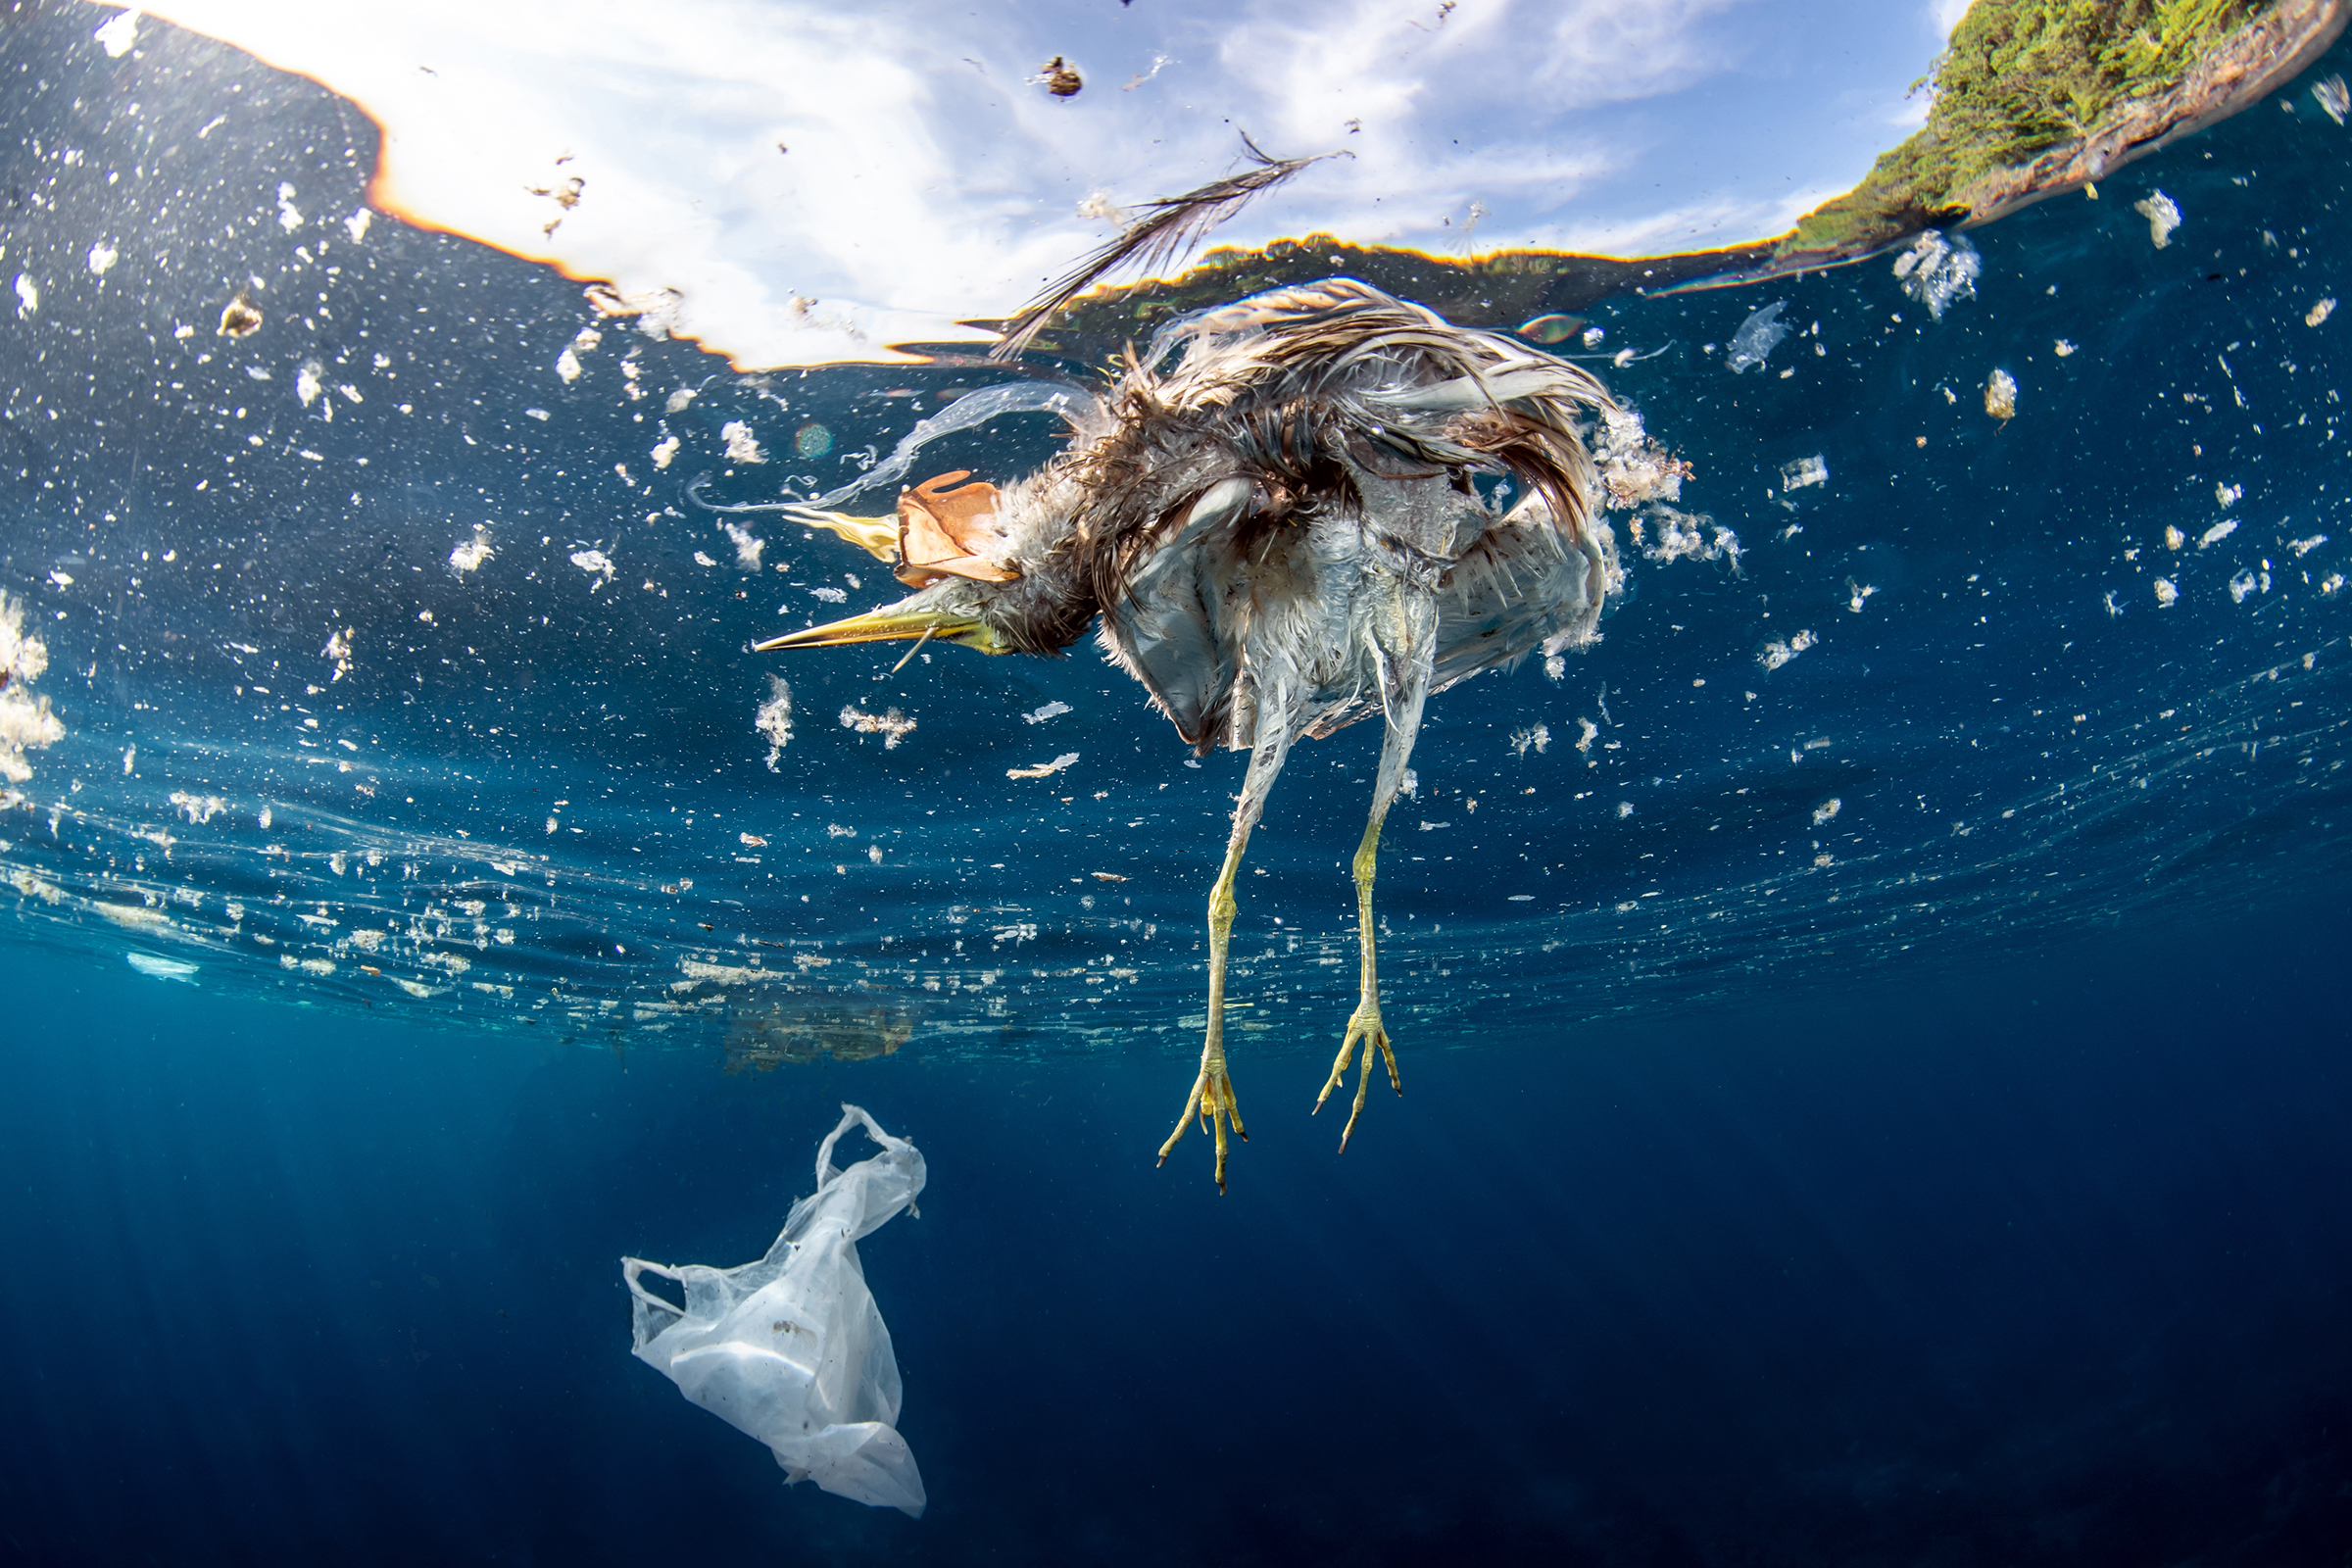 Dead bird and plastic bag floating in the ocean; Shutterstock ID 1261789855; Comments: rs.com